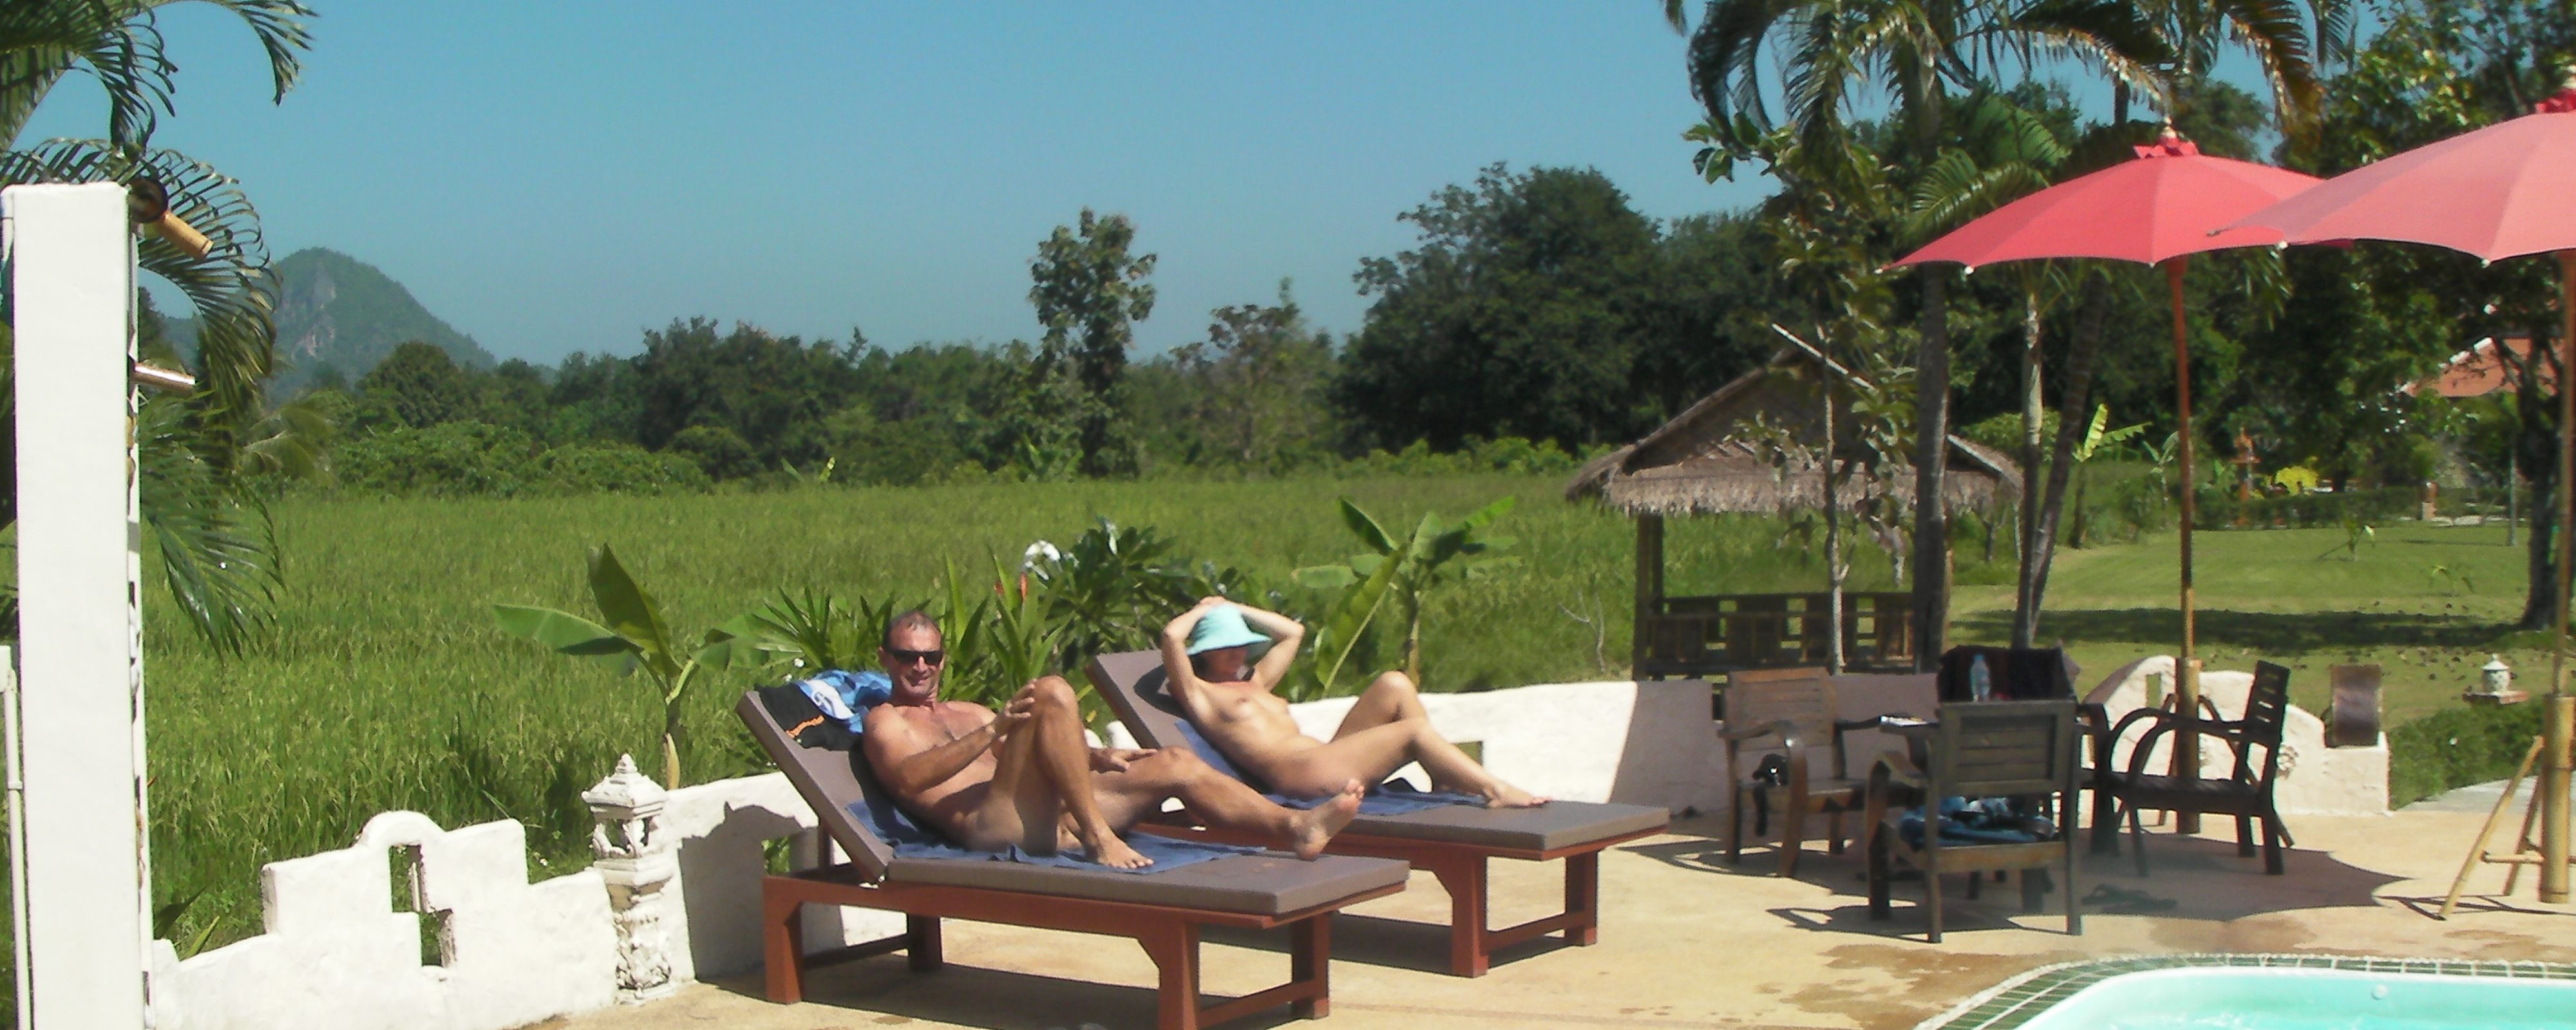 Thailand fast becoming a popular destination for naturists | SCMP